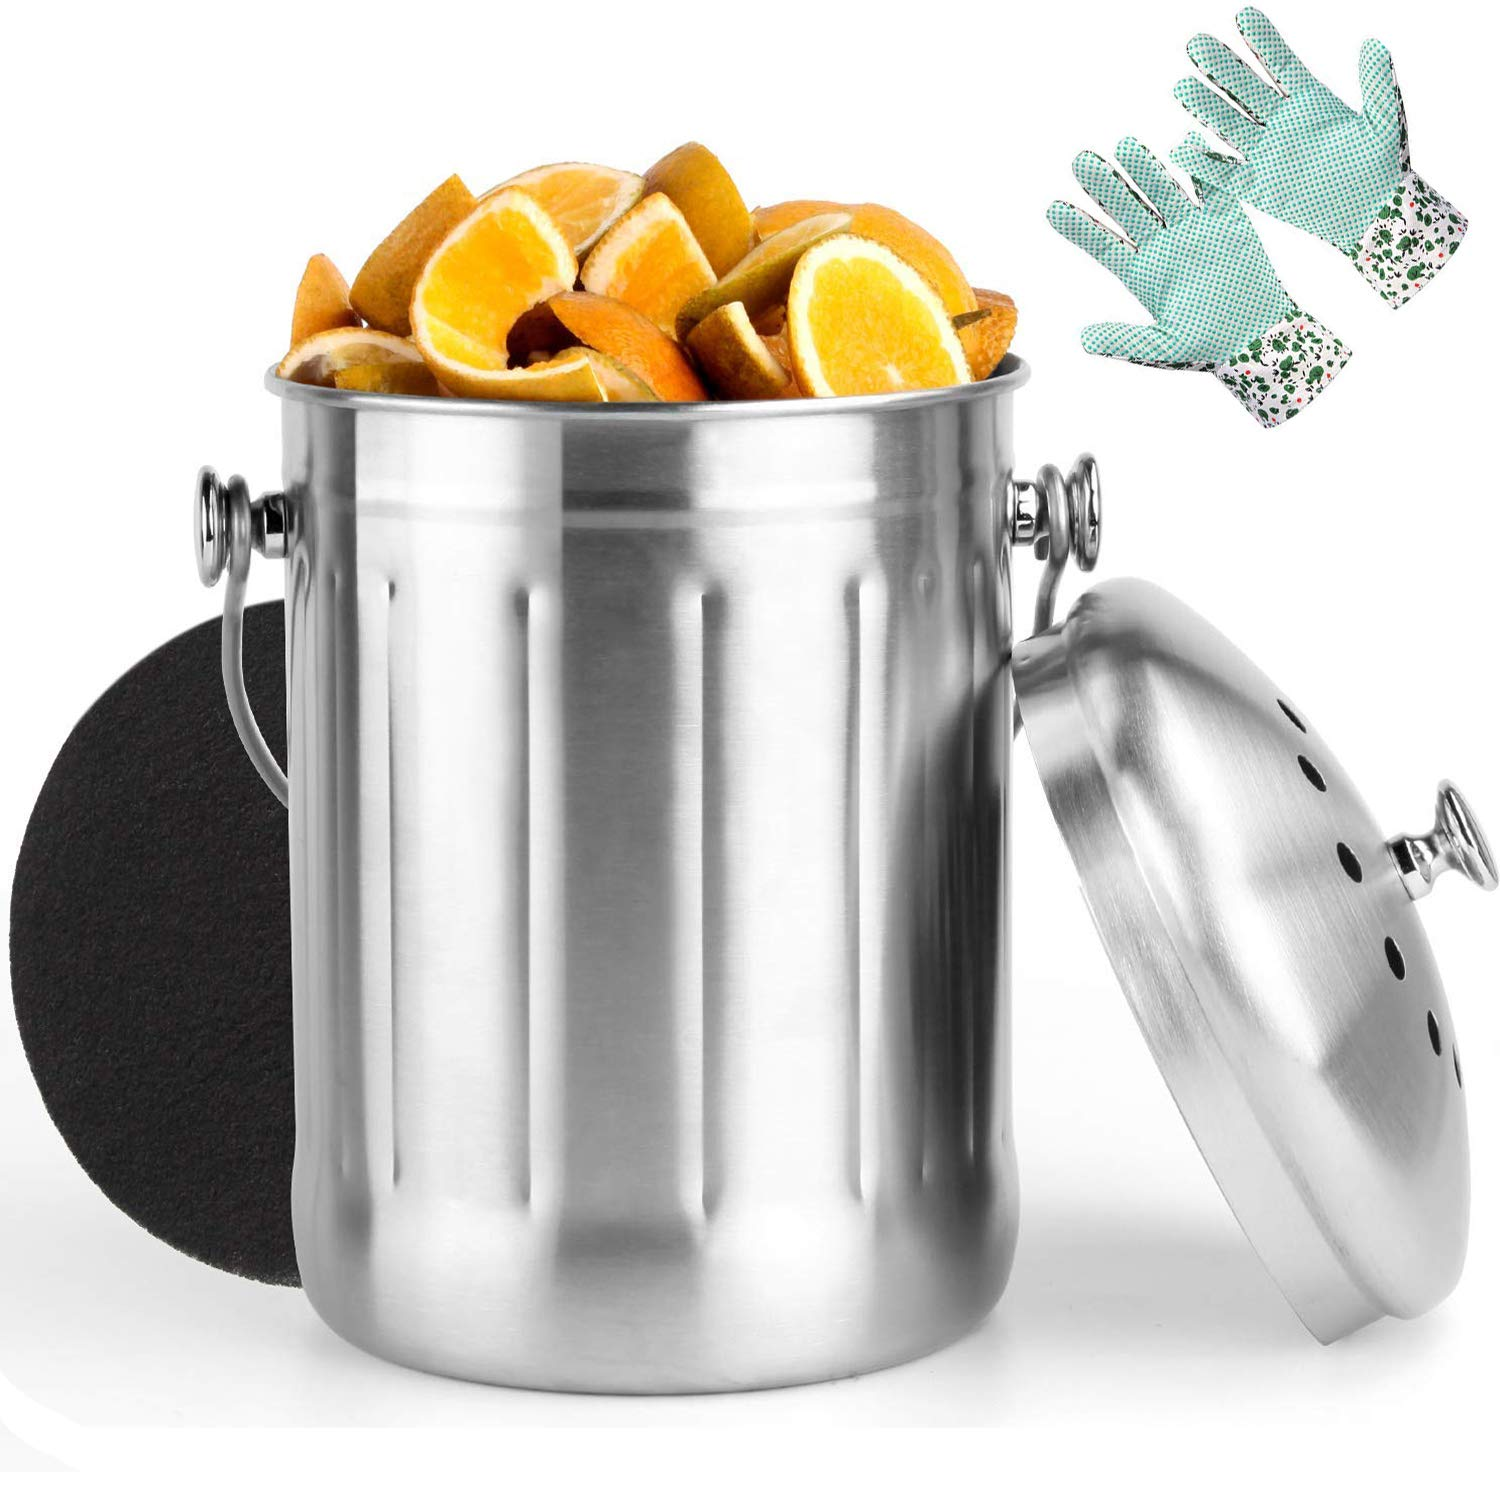 Vdomus Indoor Kitchen Stainless Steel Compost Bin Includes 1 Carbon Filter and Anti-Slip PVC Dots Garden Gloves 1.3 Gallon VMHKCB2018SS